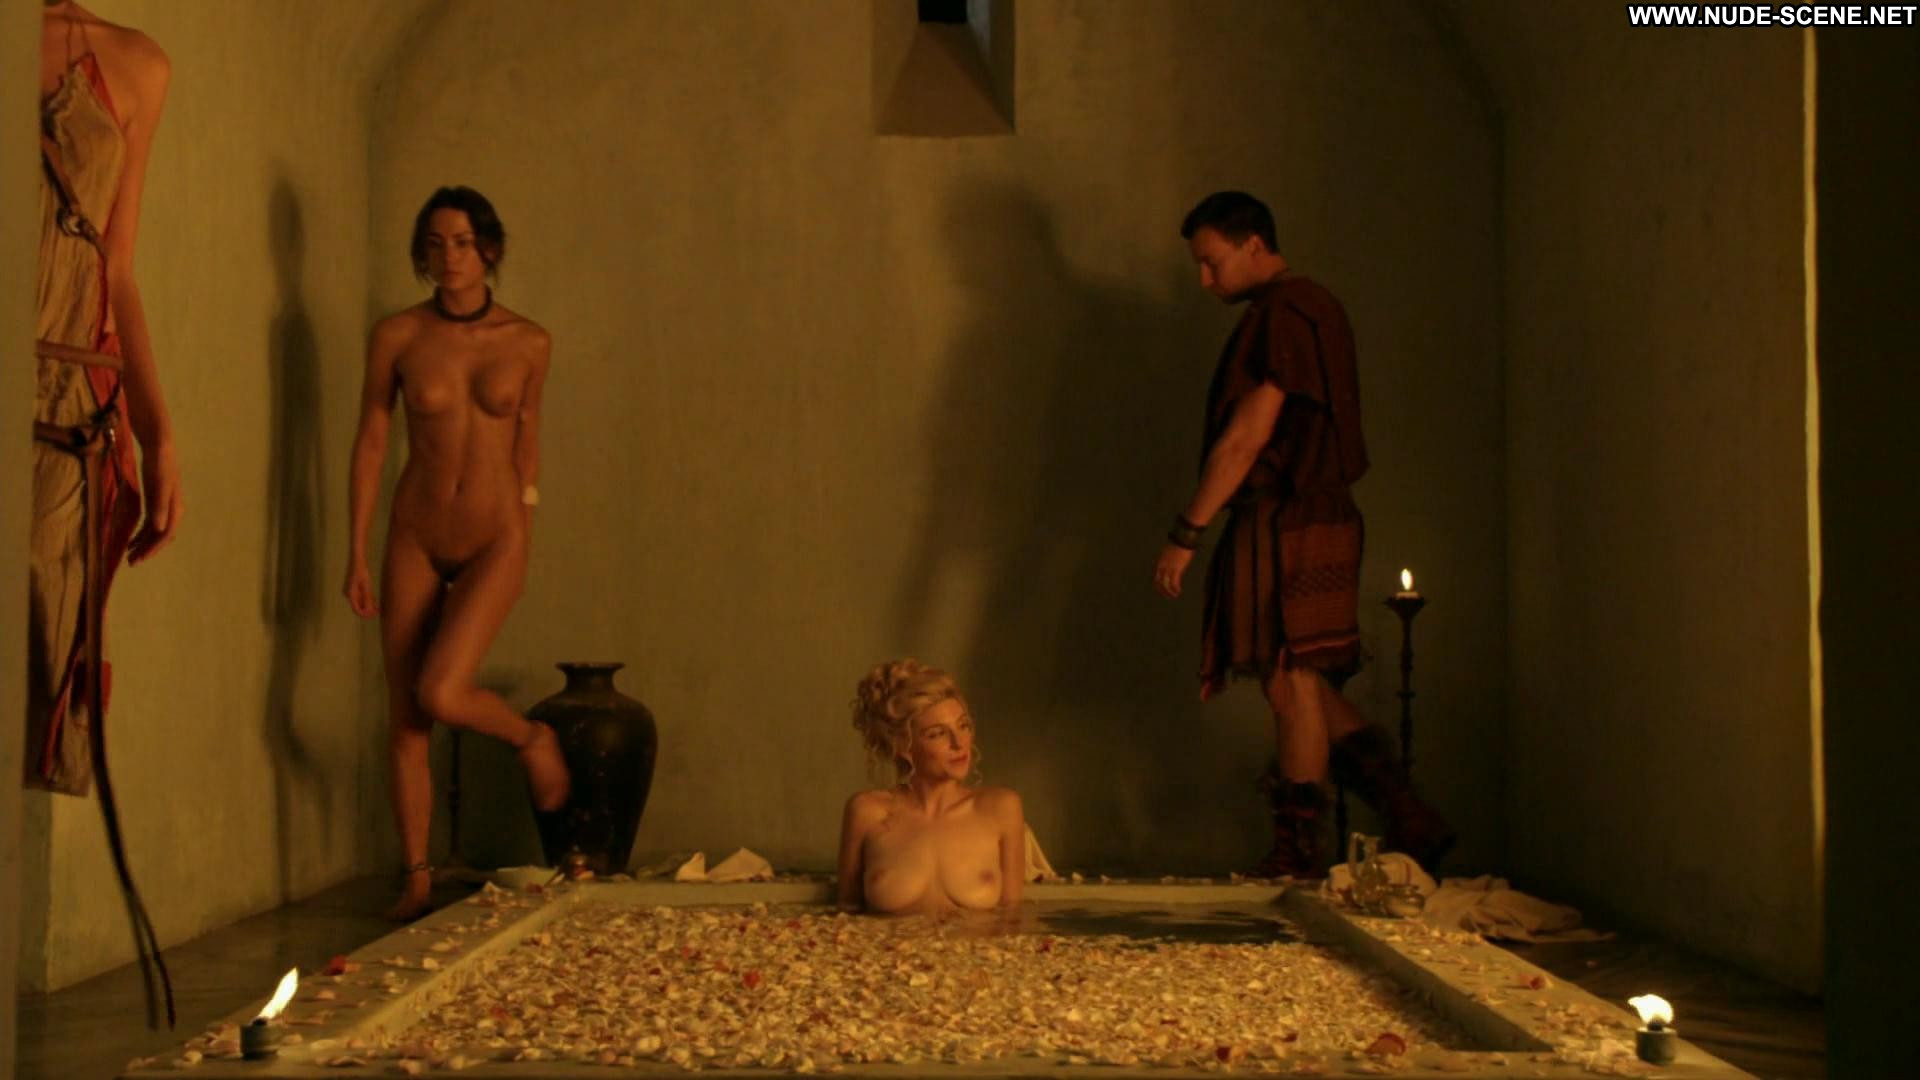 ... Shit Load Of Unknown Naked Girls Spartacus Celebrity Posing Hot